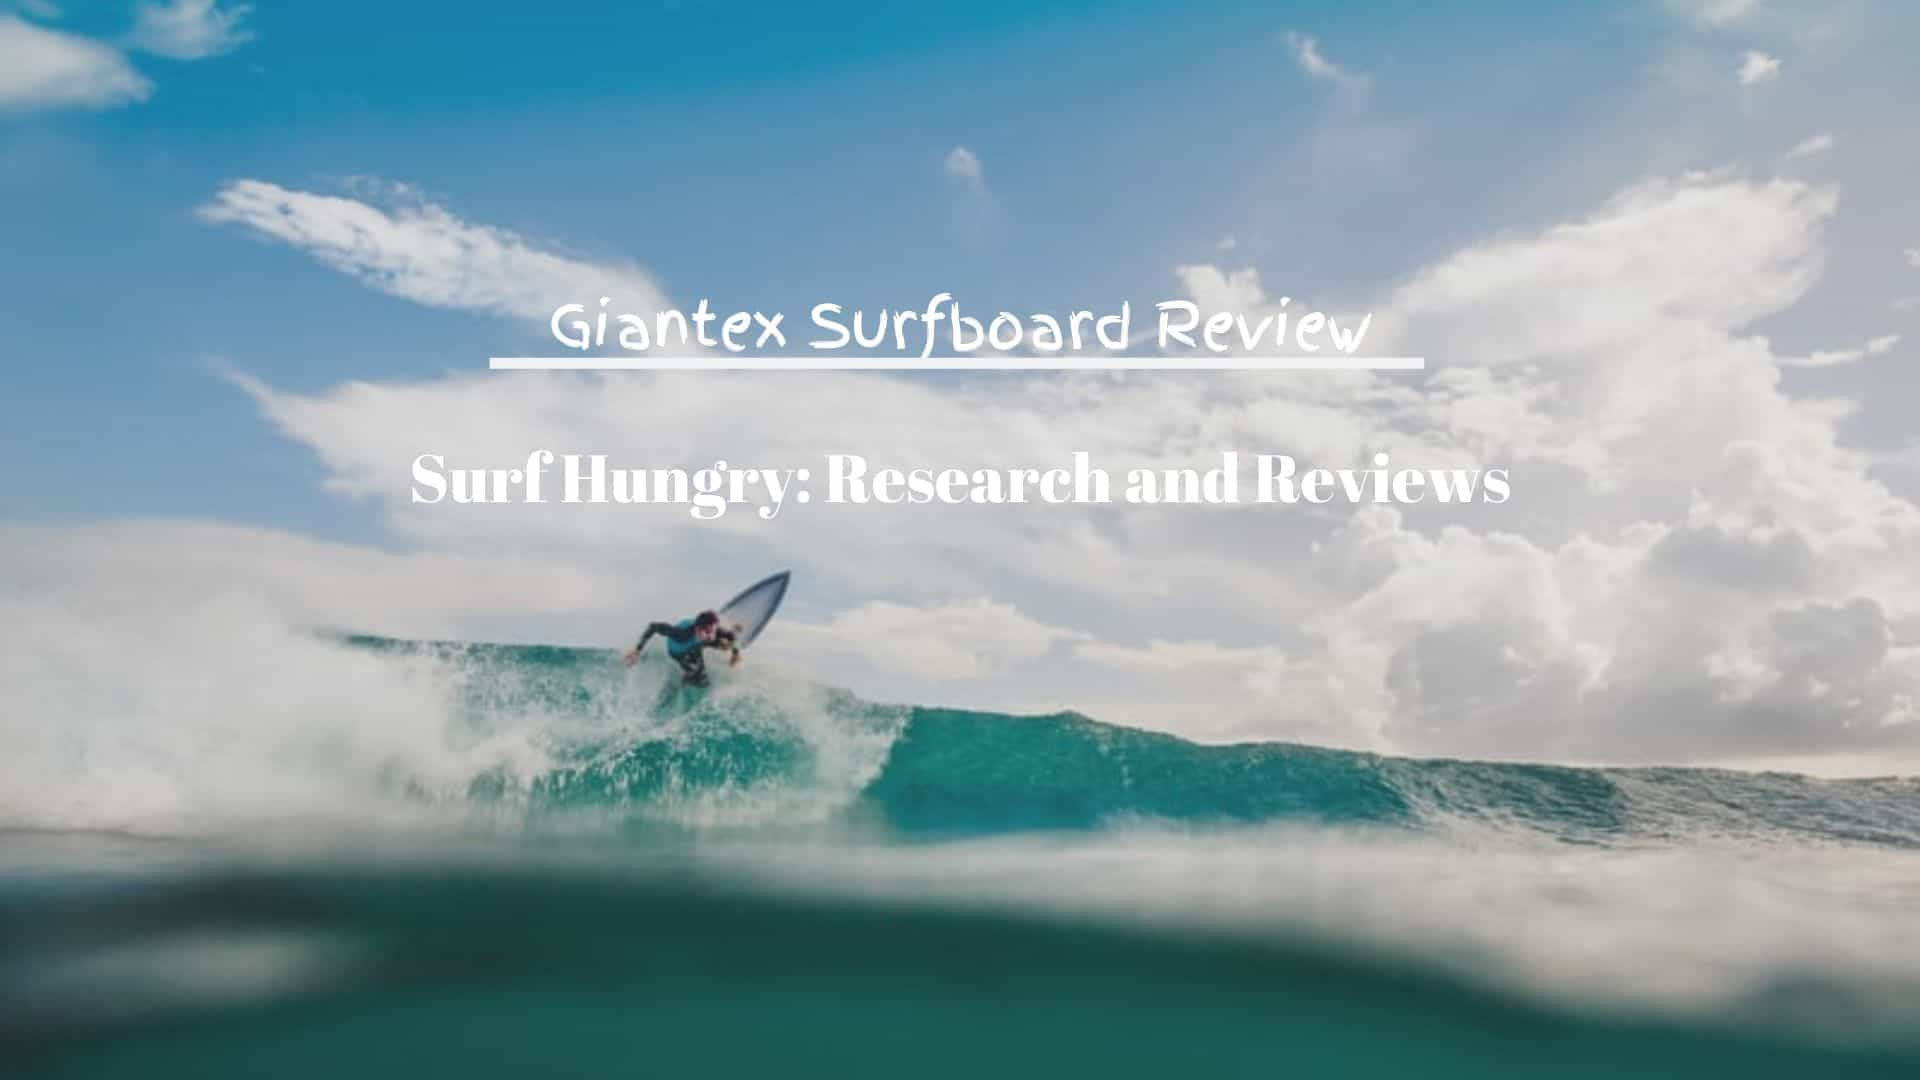 giantex surfboard review